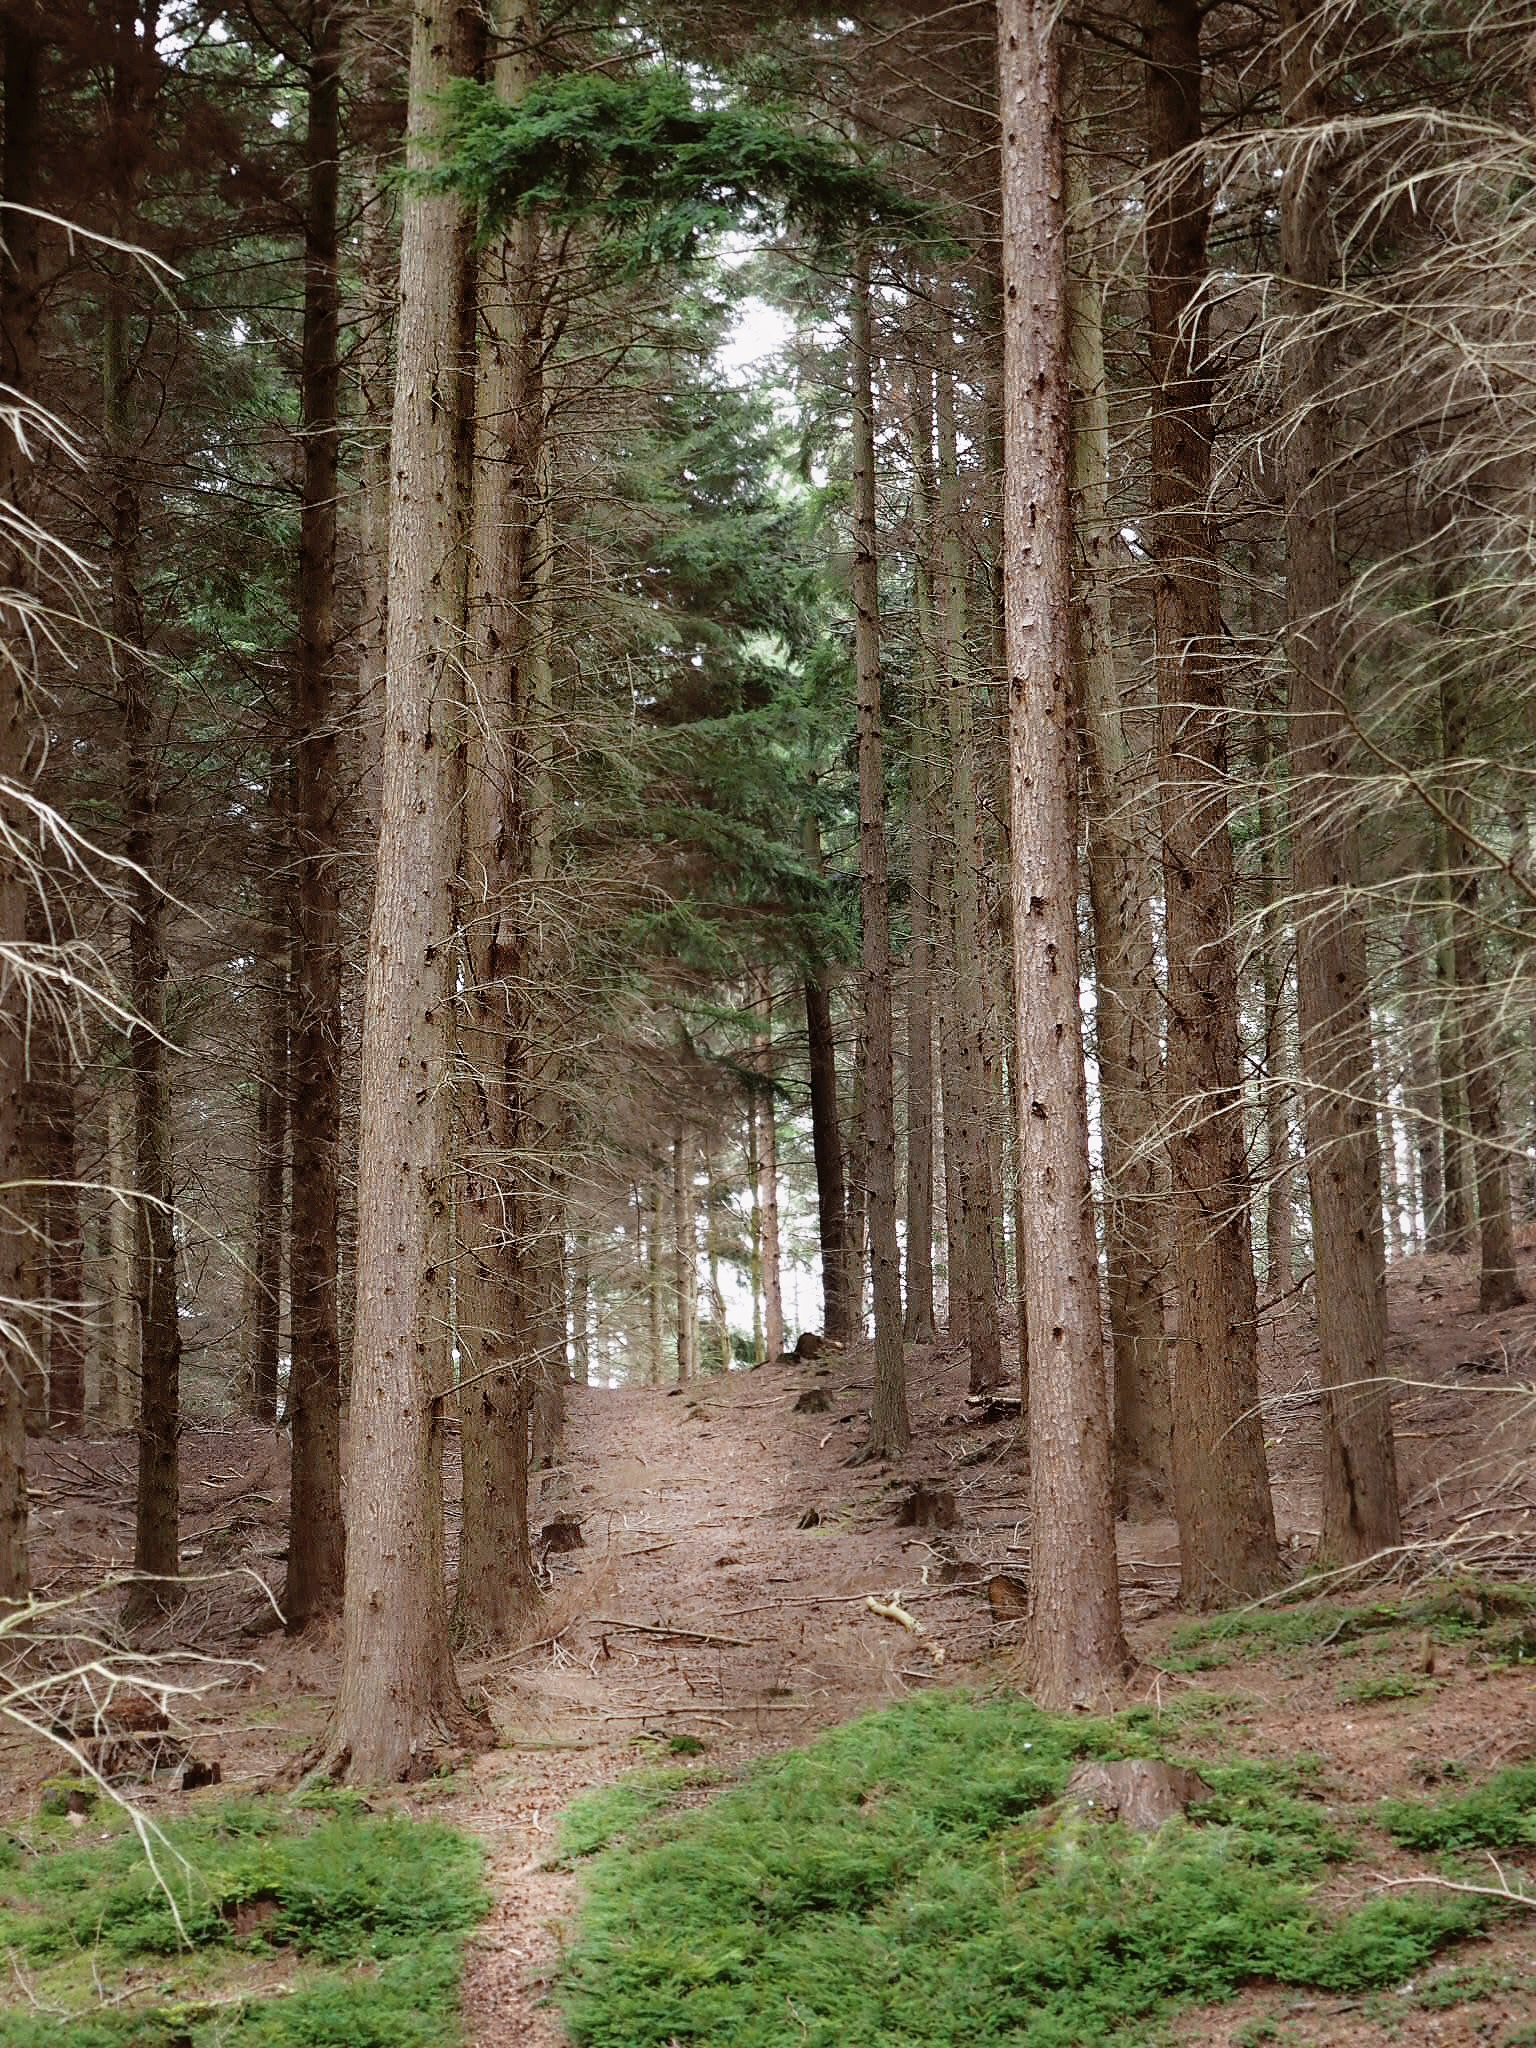 The dry forest floor